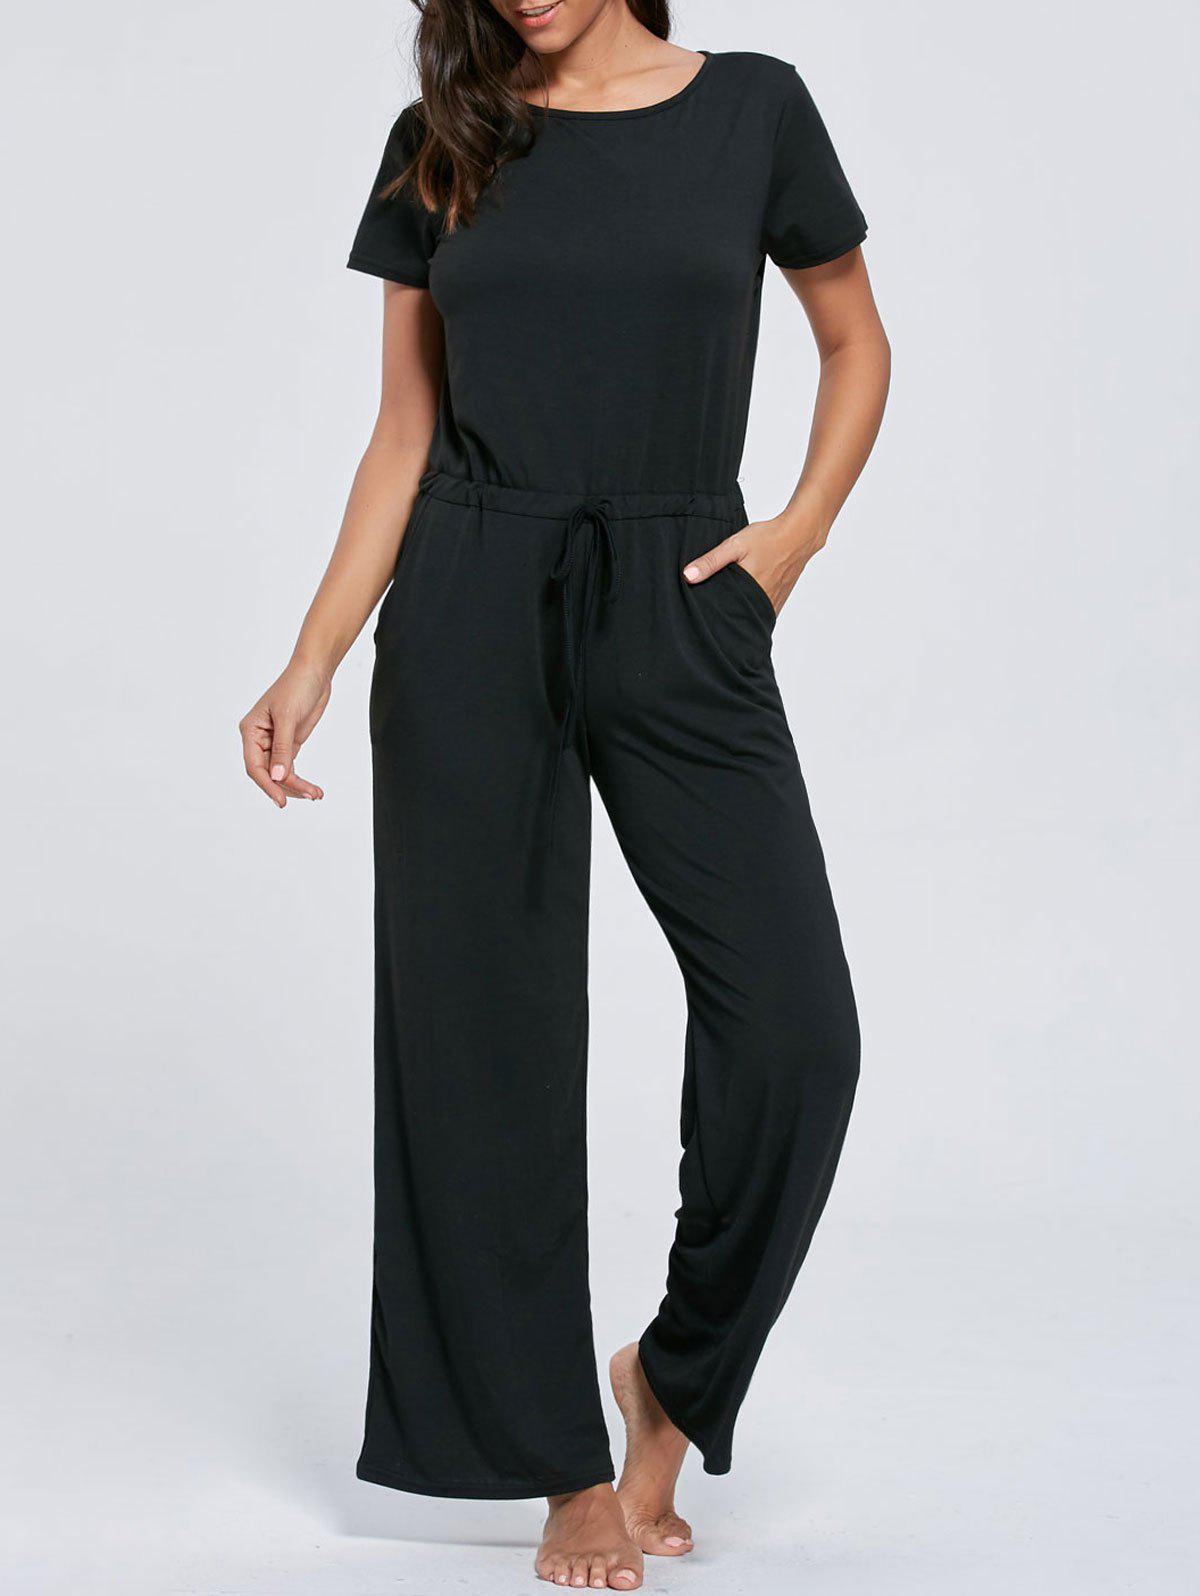 Short Sleeve Pocket Drawstring Jumpsuit - BLACK XL